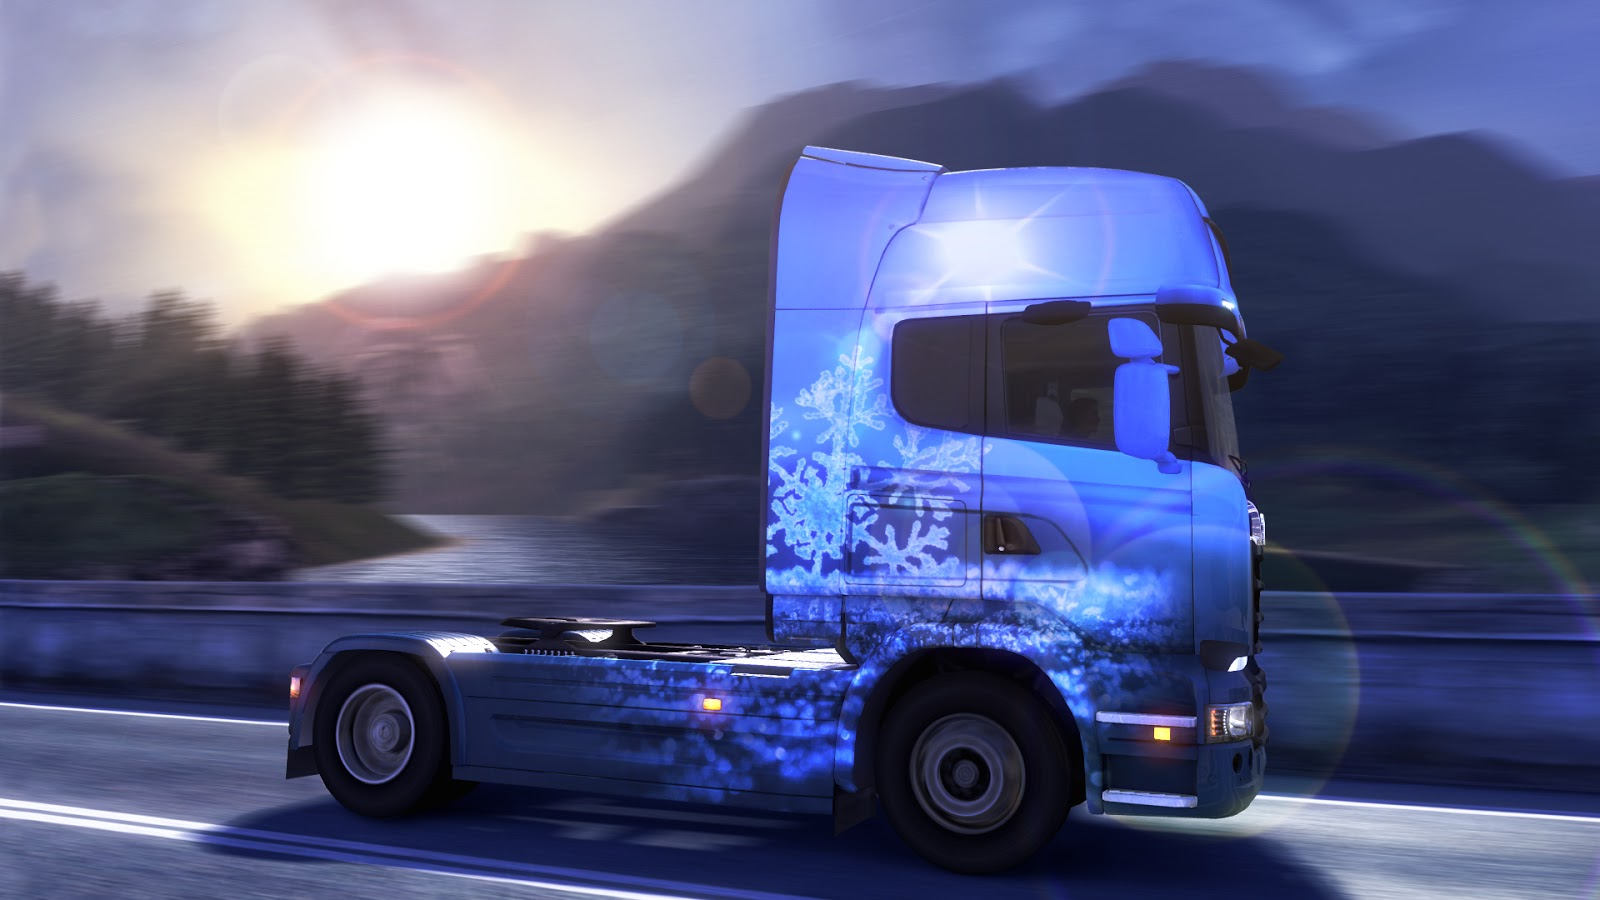 Euro Truck Simulator 2 - Ice Cold Paint Jobs Pack Download